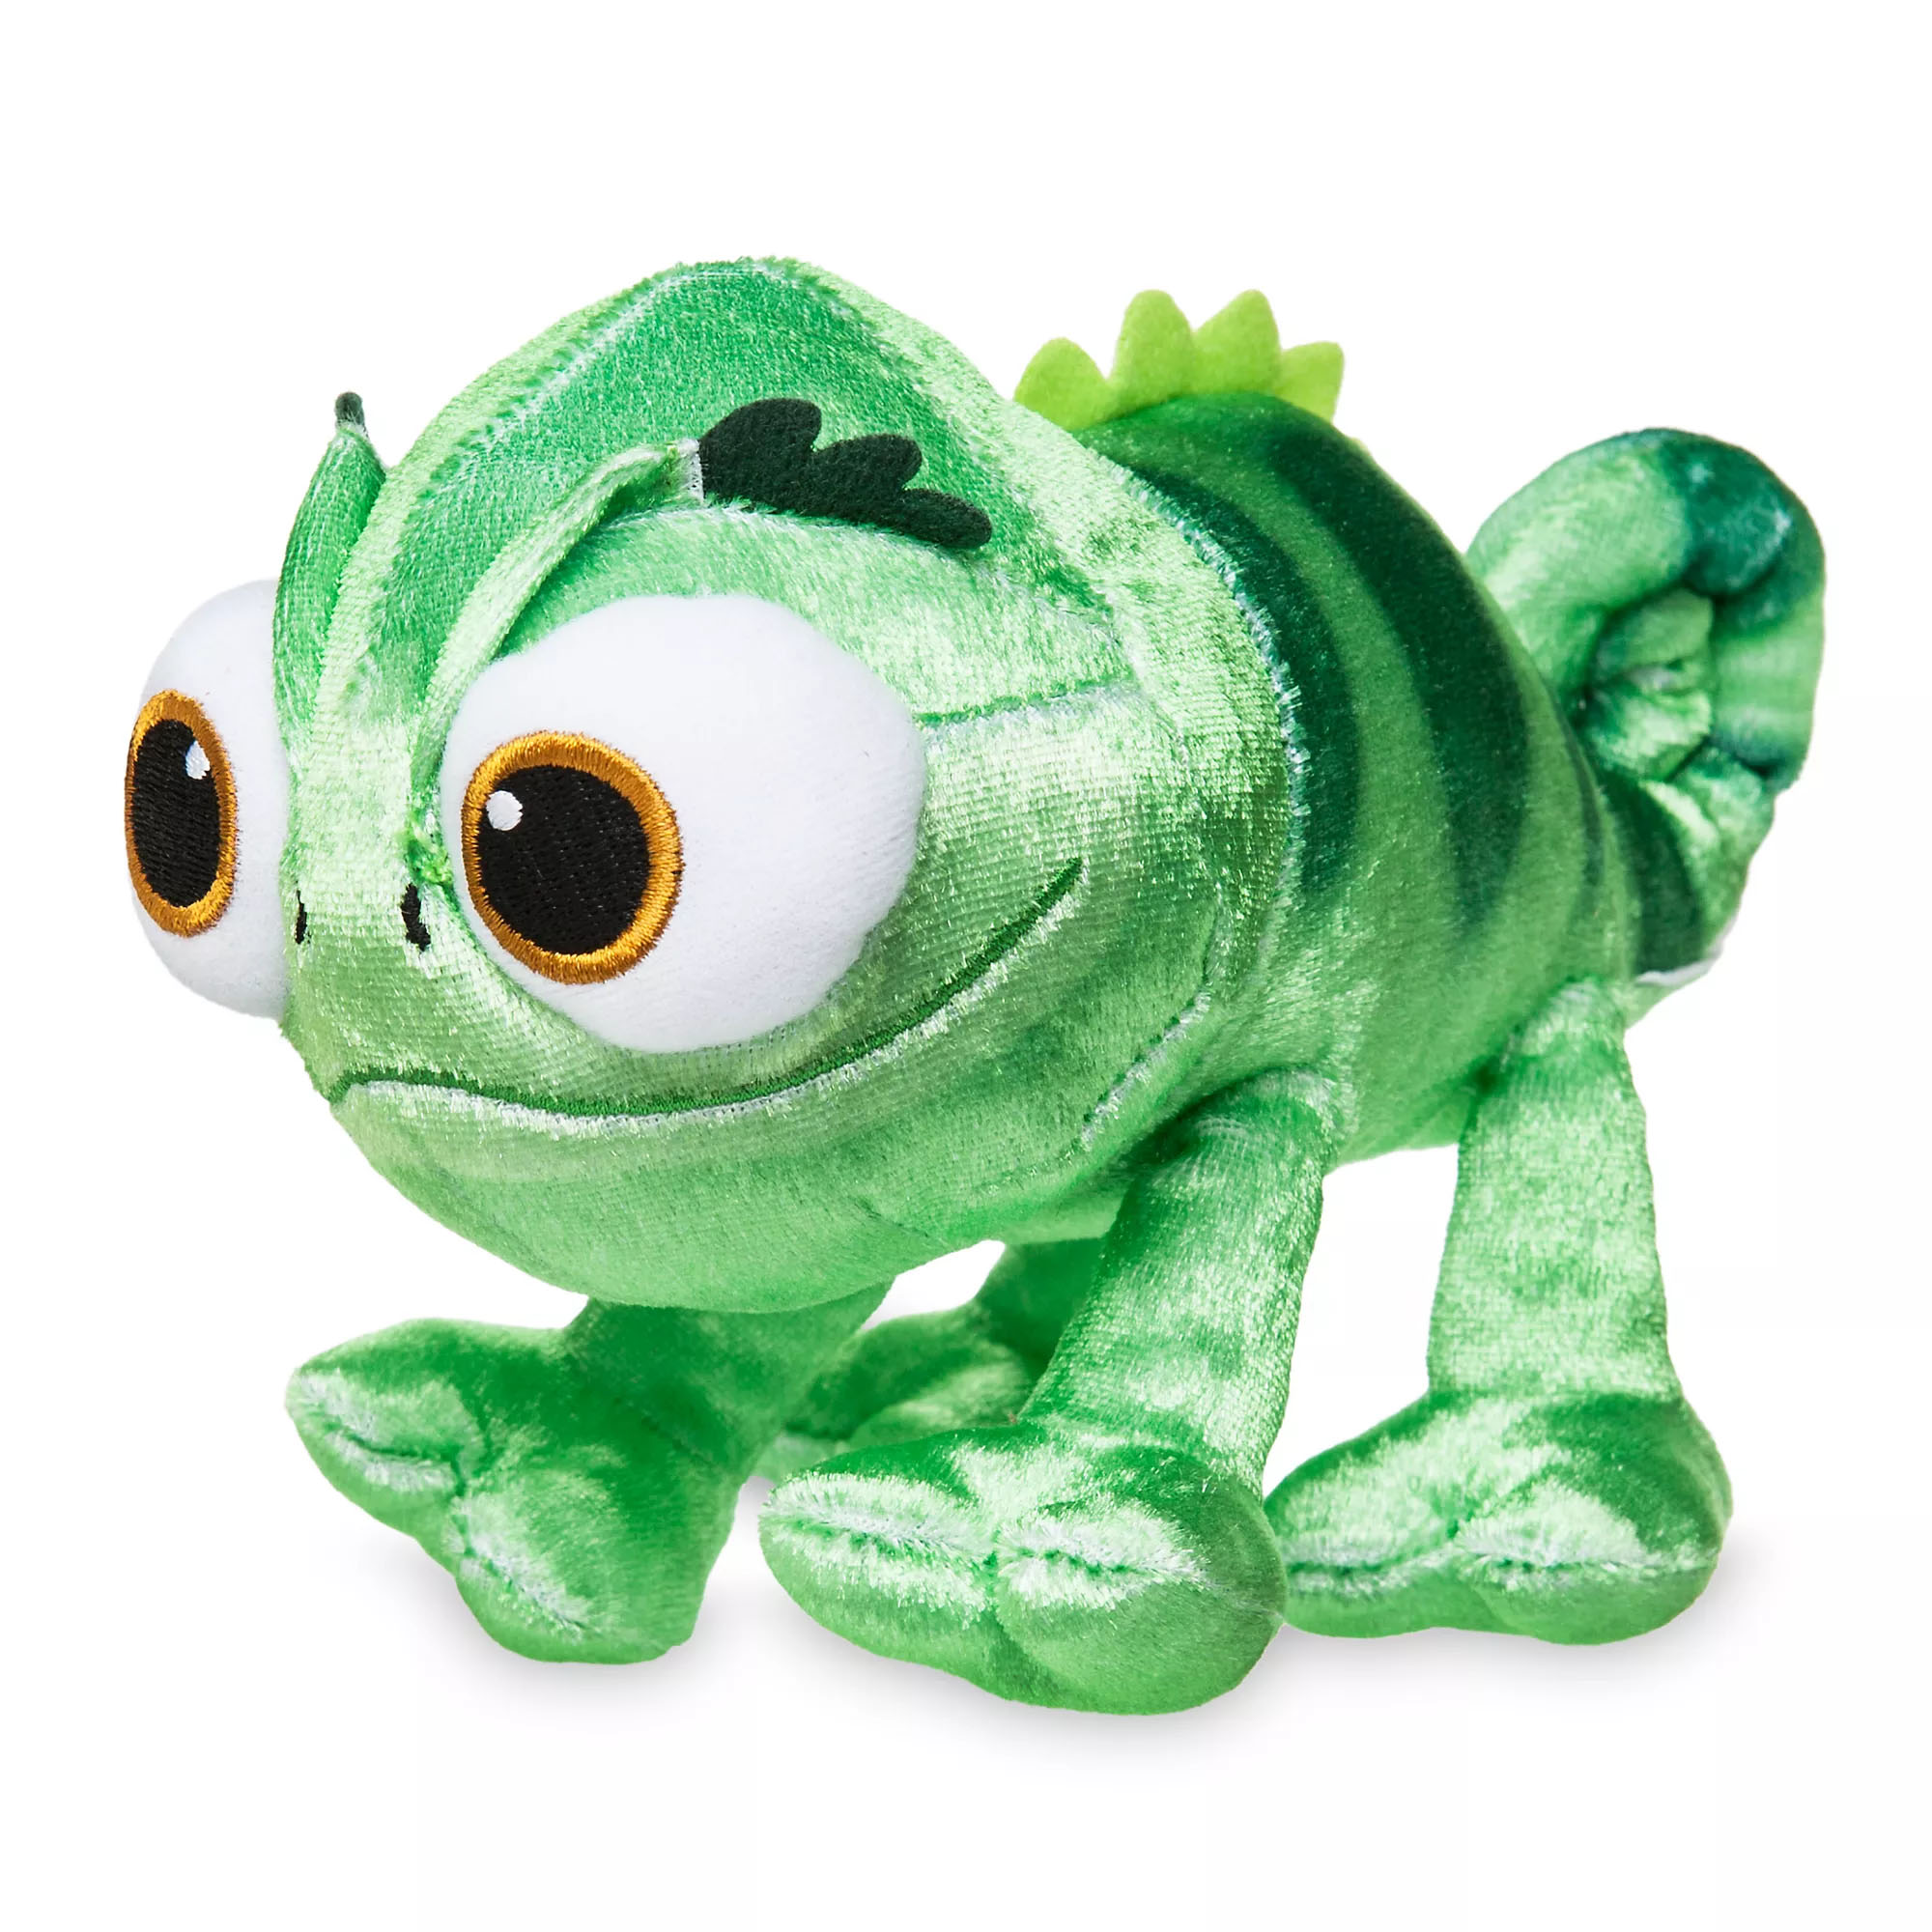 Disney Princess Tangled Rapunzel Pascal Chameleon Mini Plush